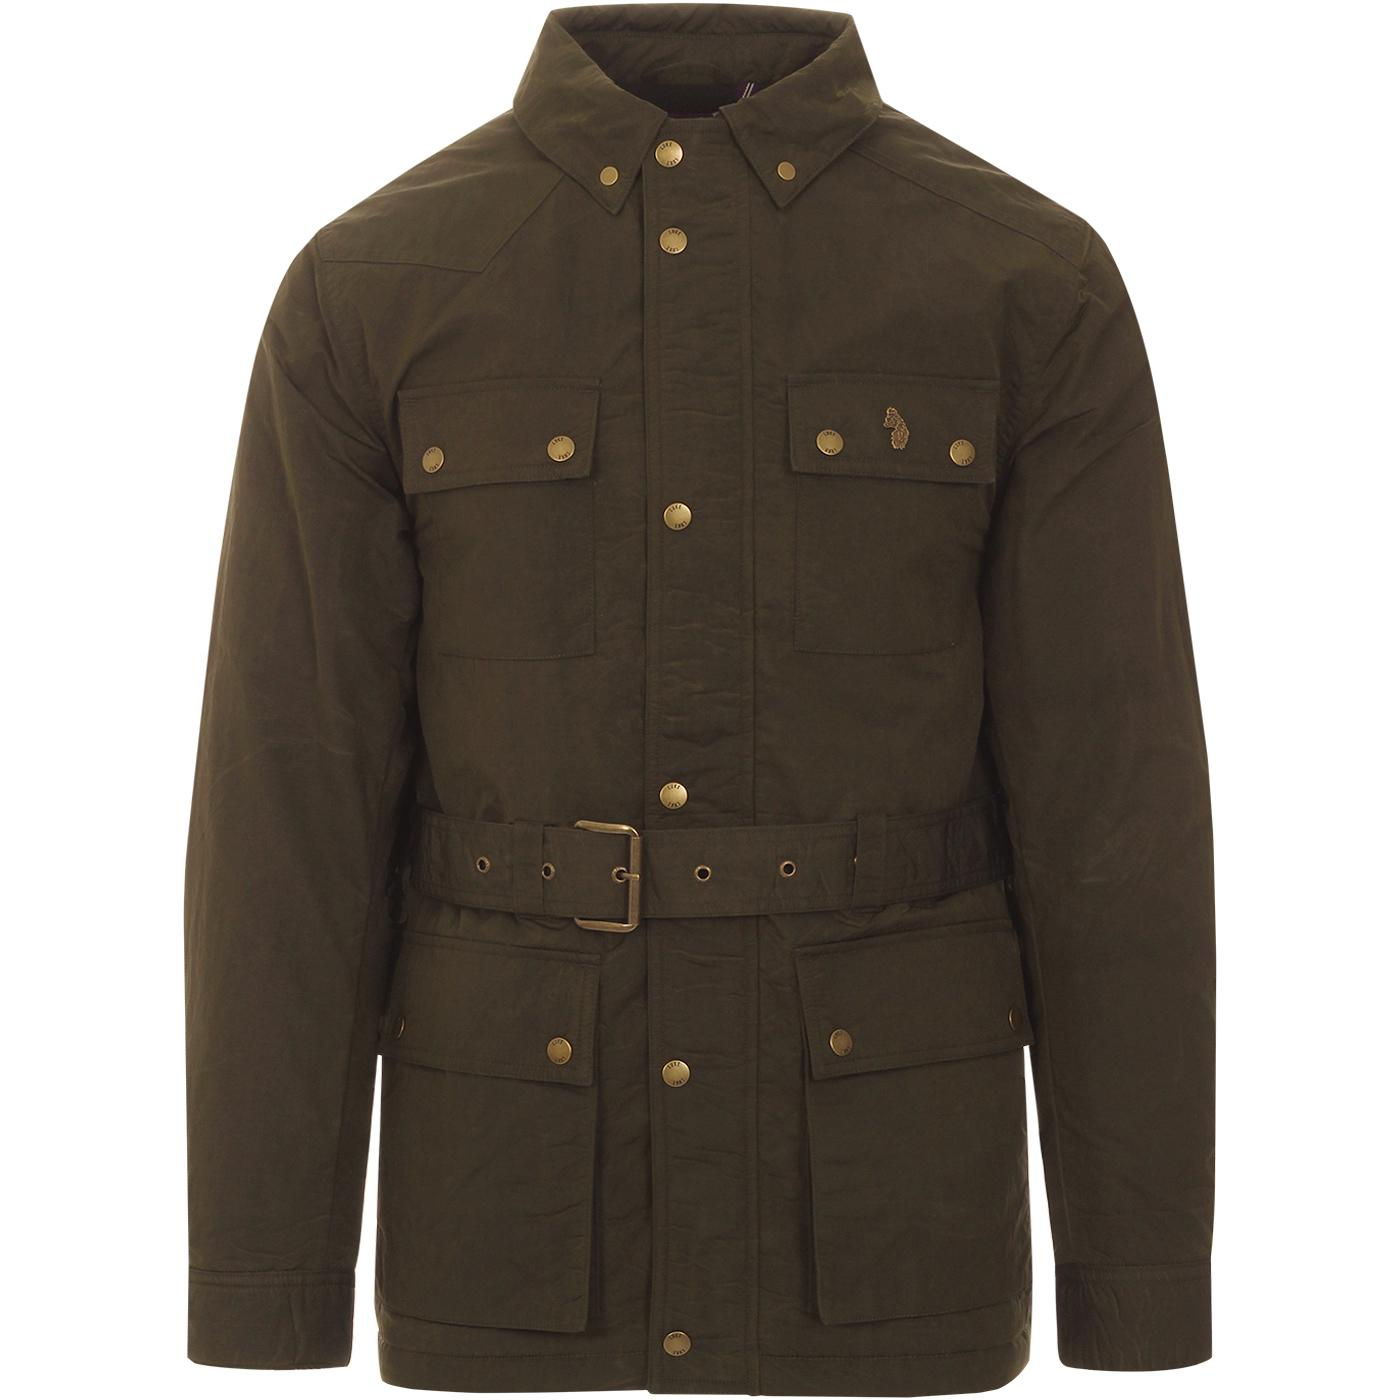 1000 Acres LUKE Retro Belted Tech Field Jacket (O)